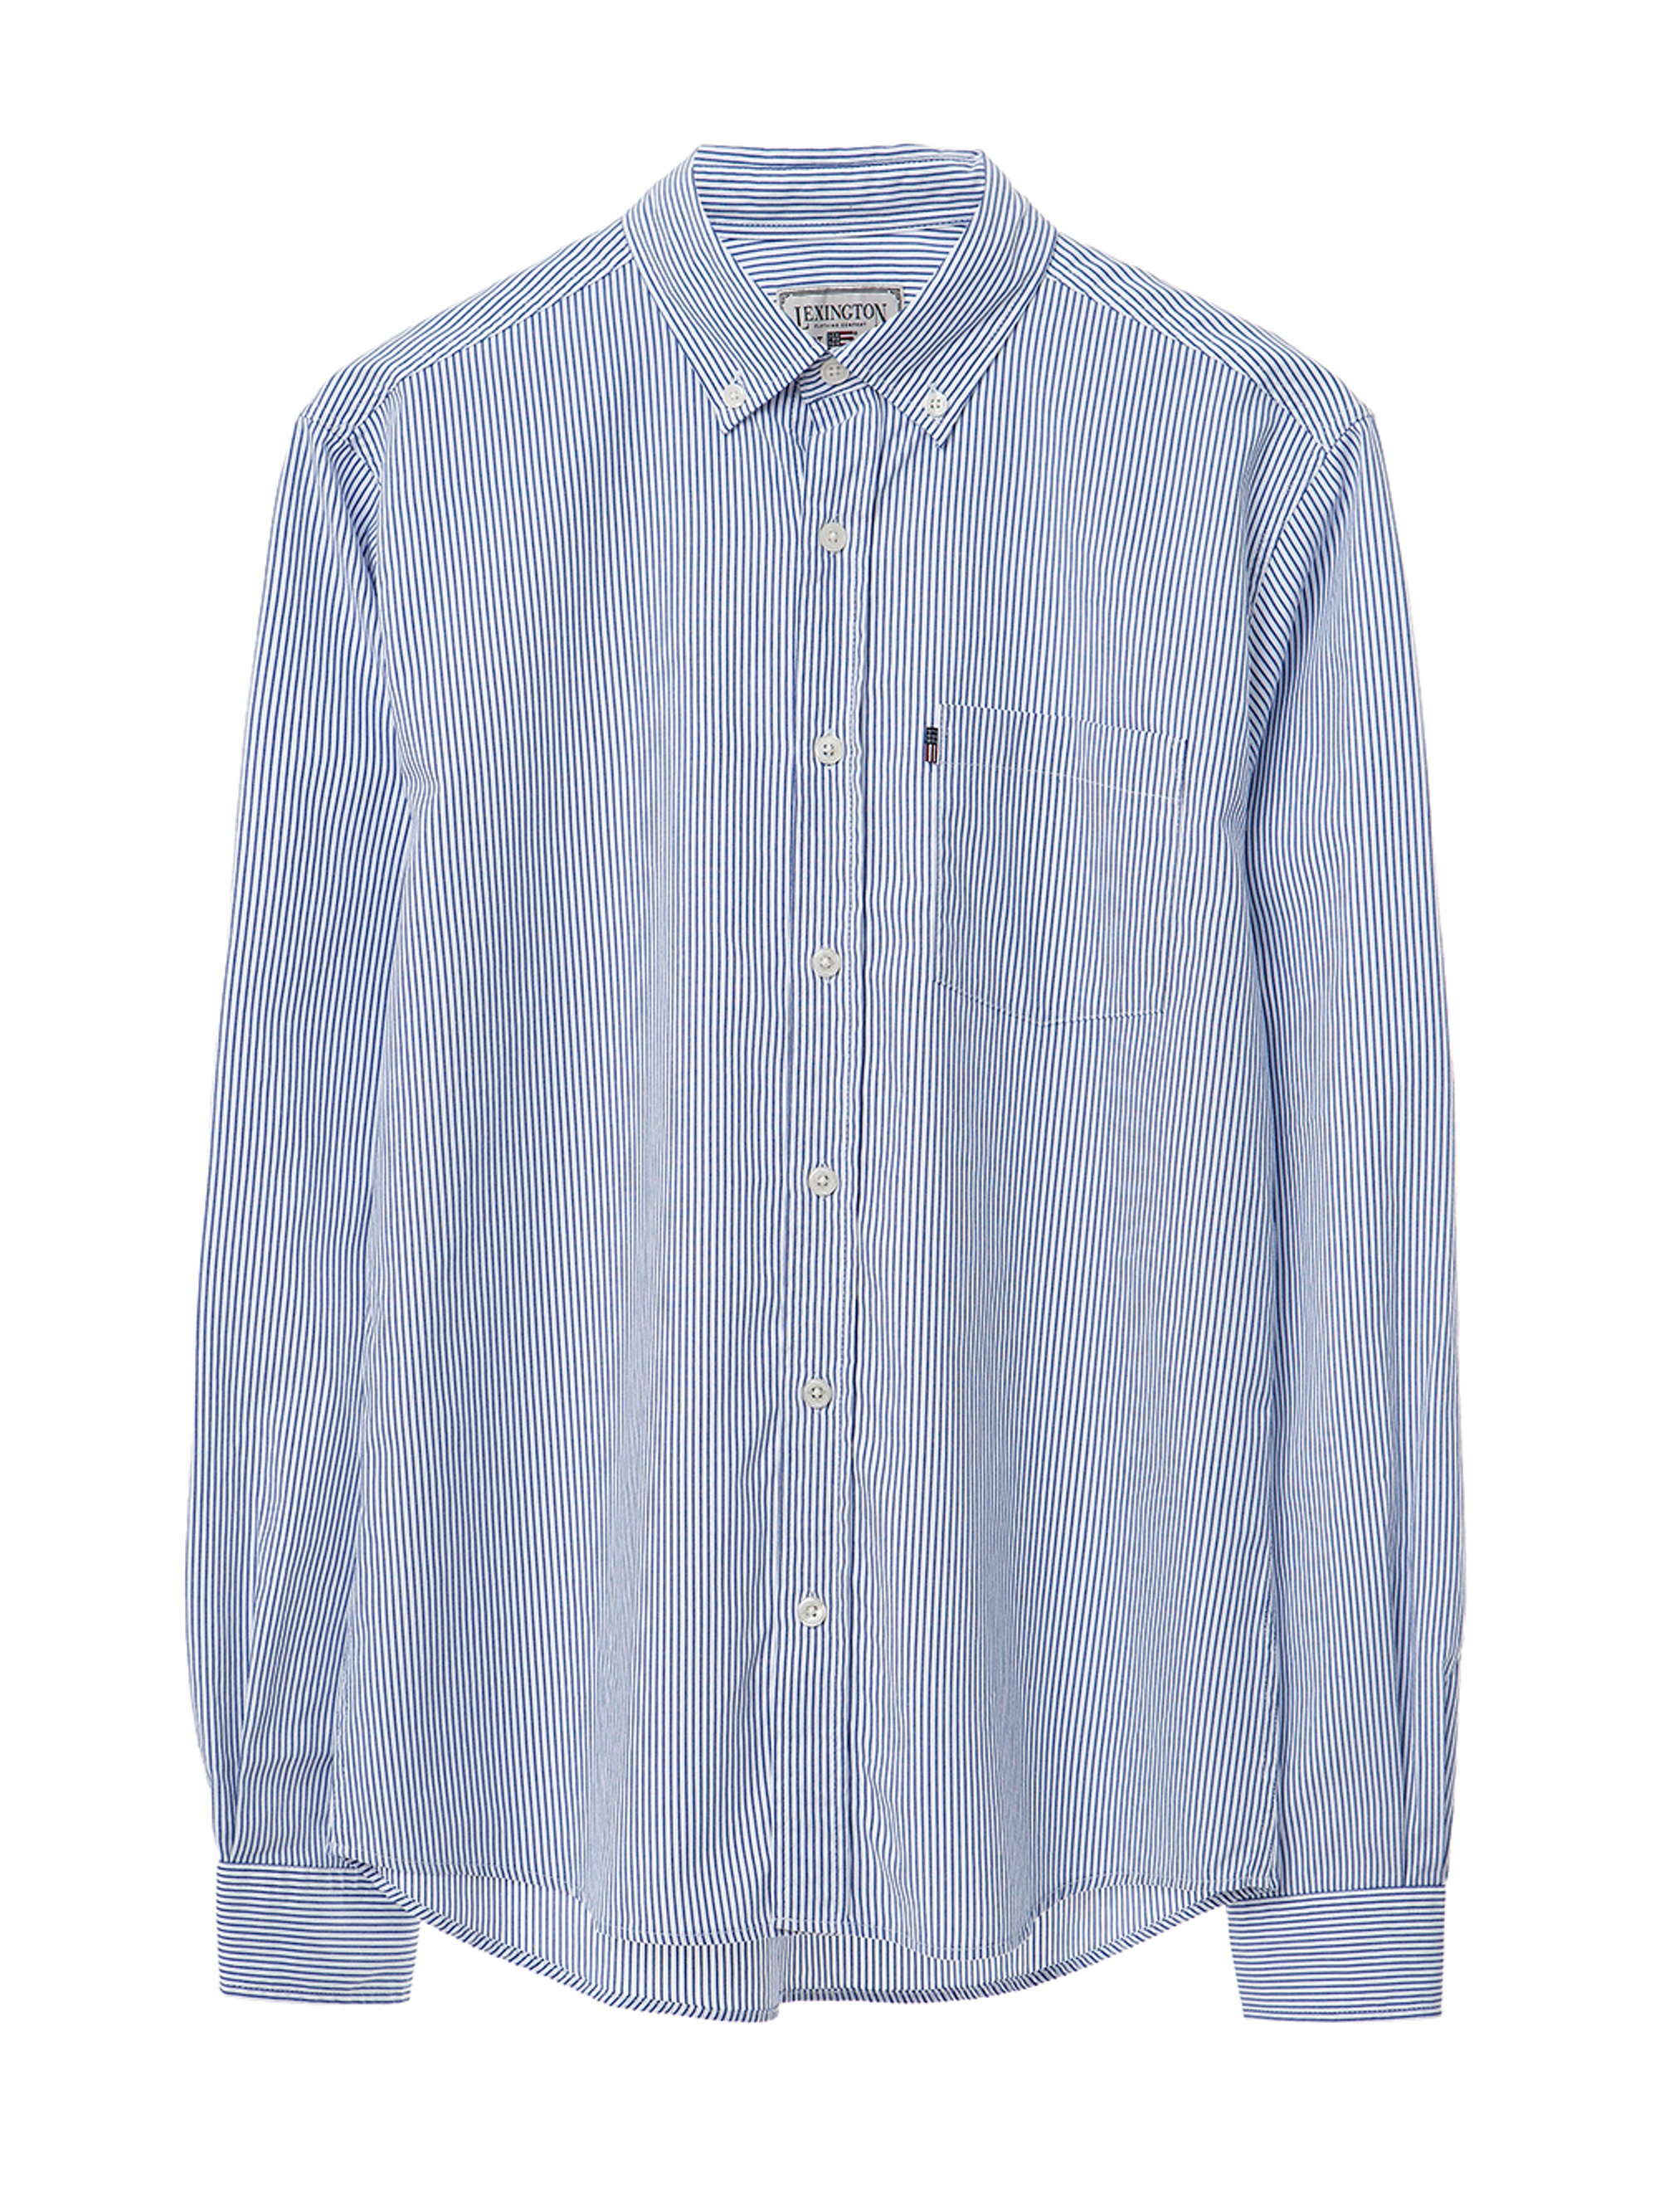 Peter Light Oxford Shirt, Blue/White